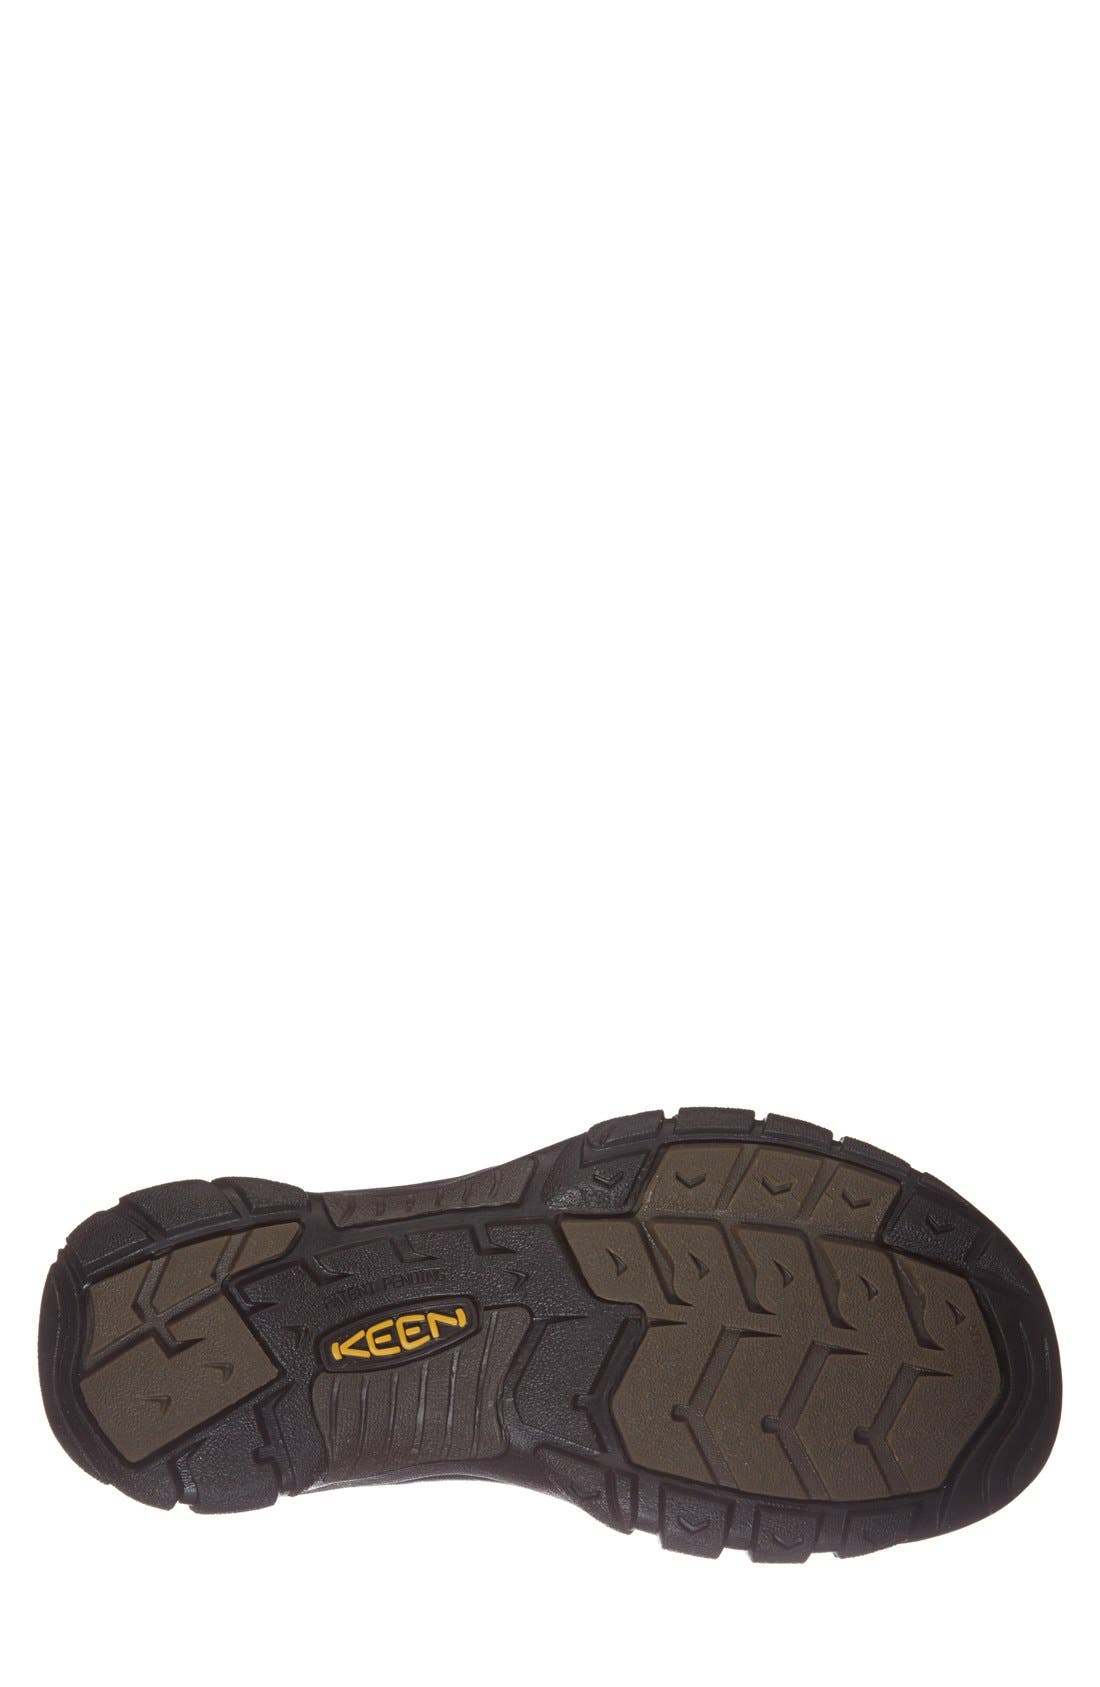 Alternate Image 4  - Keen 'Newport' Sandal (Men)